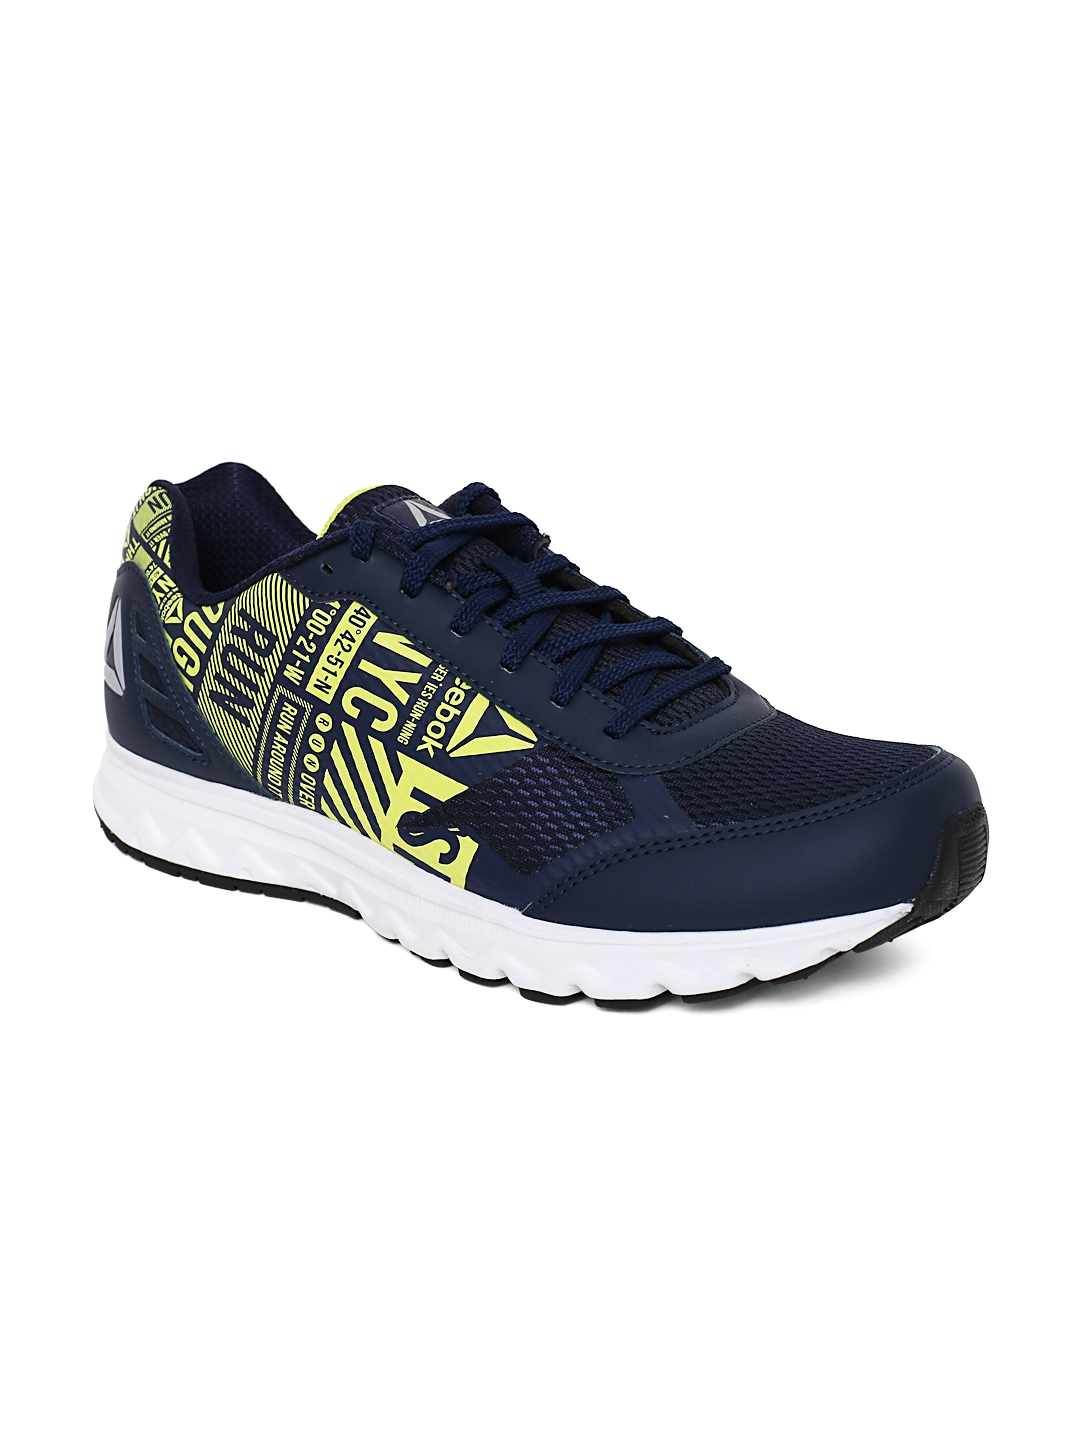 8e0169d552f5 Buy Reebok Men Navy Voyager Xtreme Running Shoes - Sports Shoes for ...